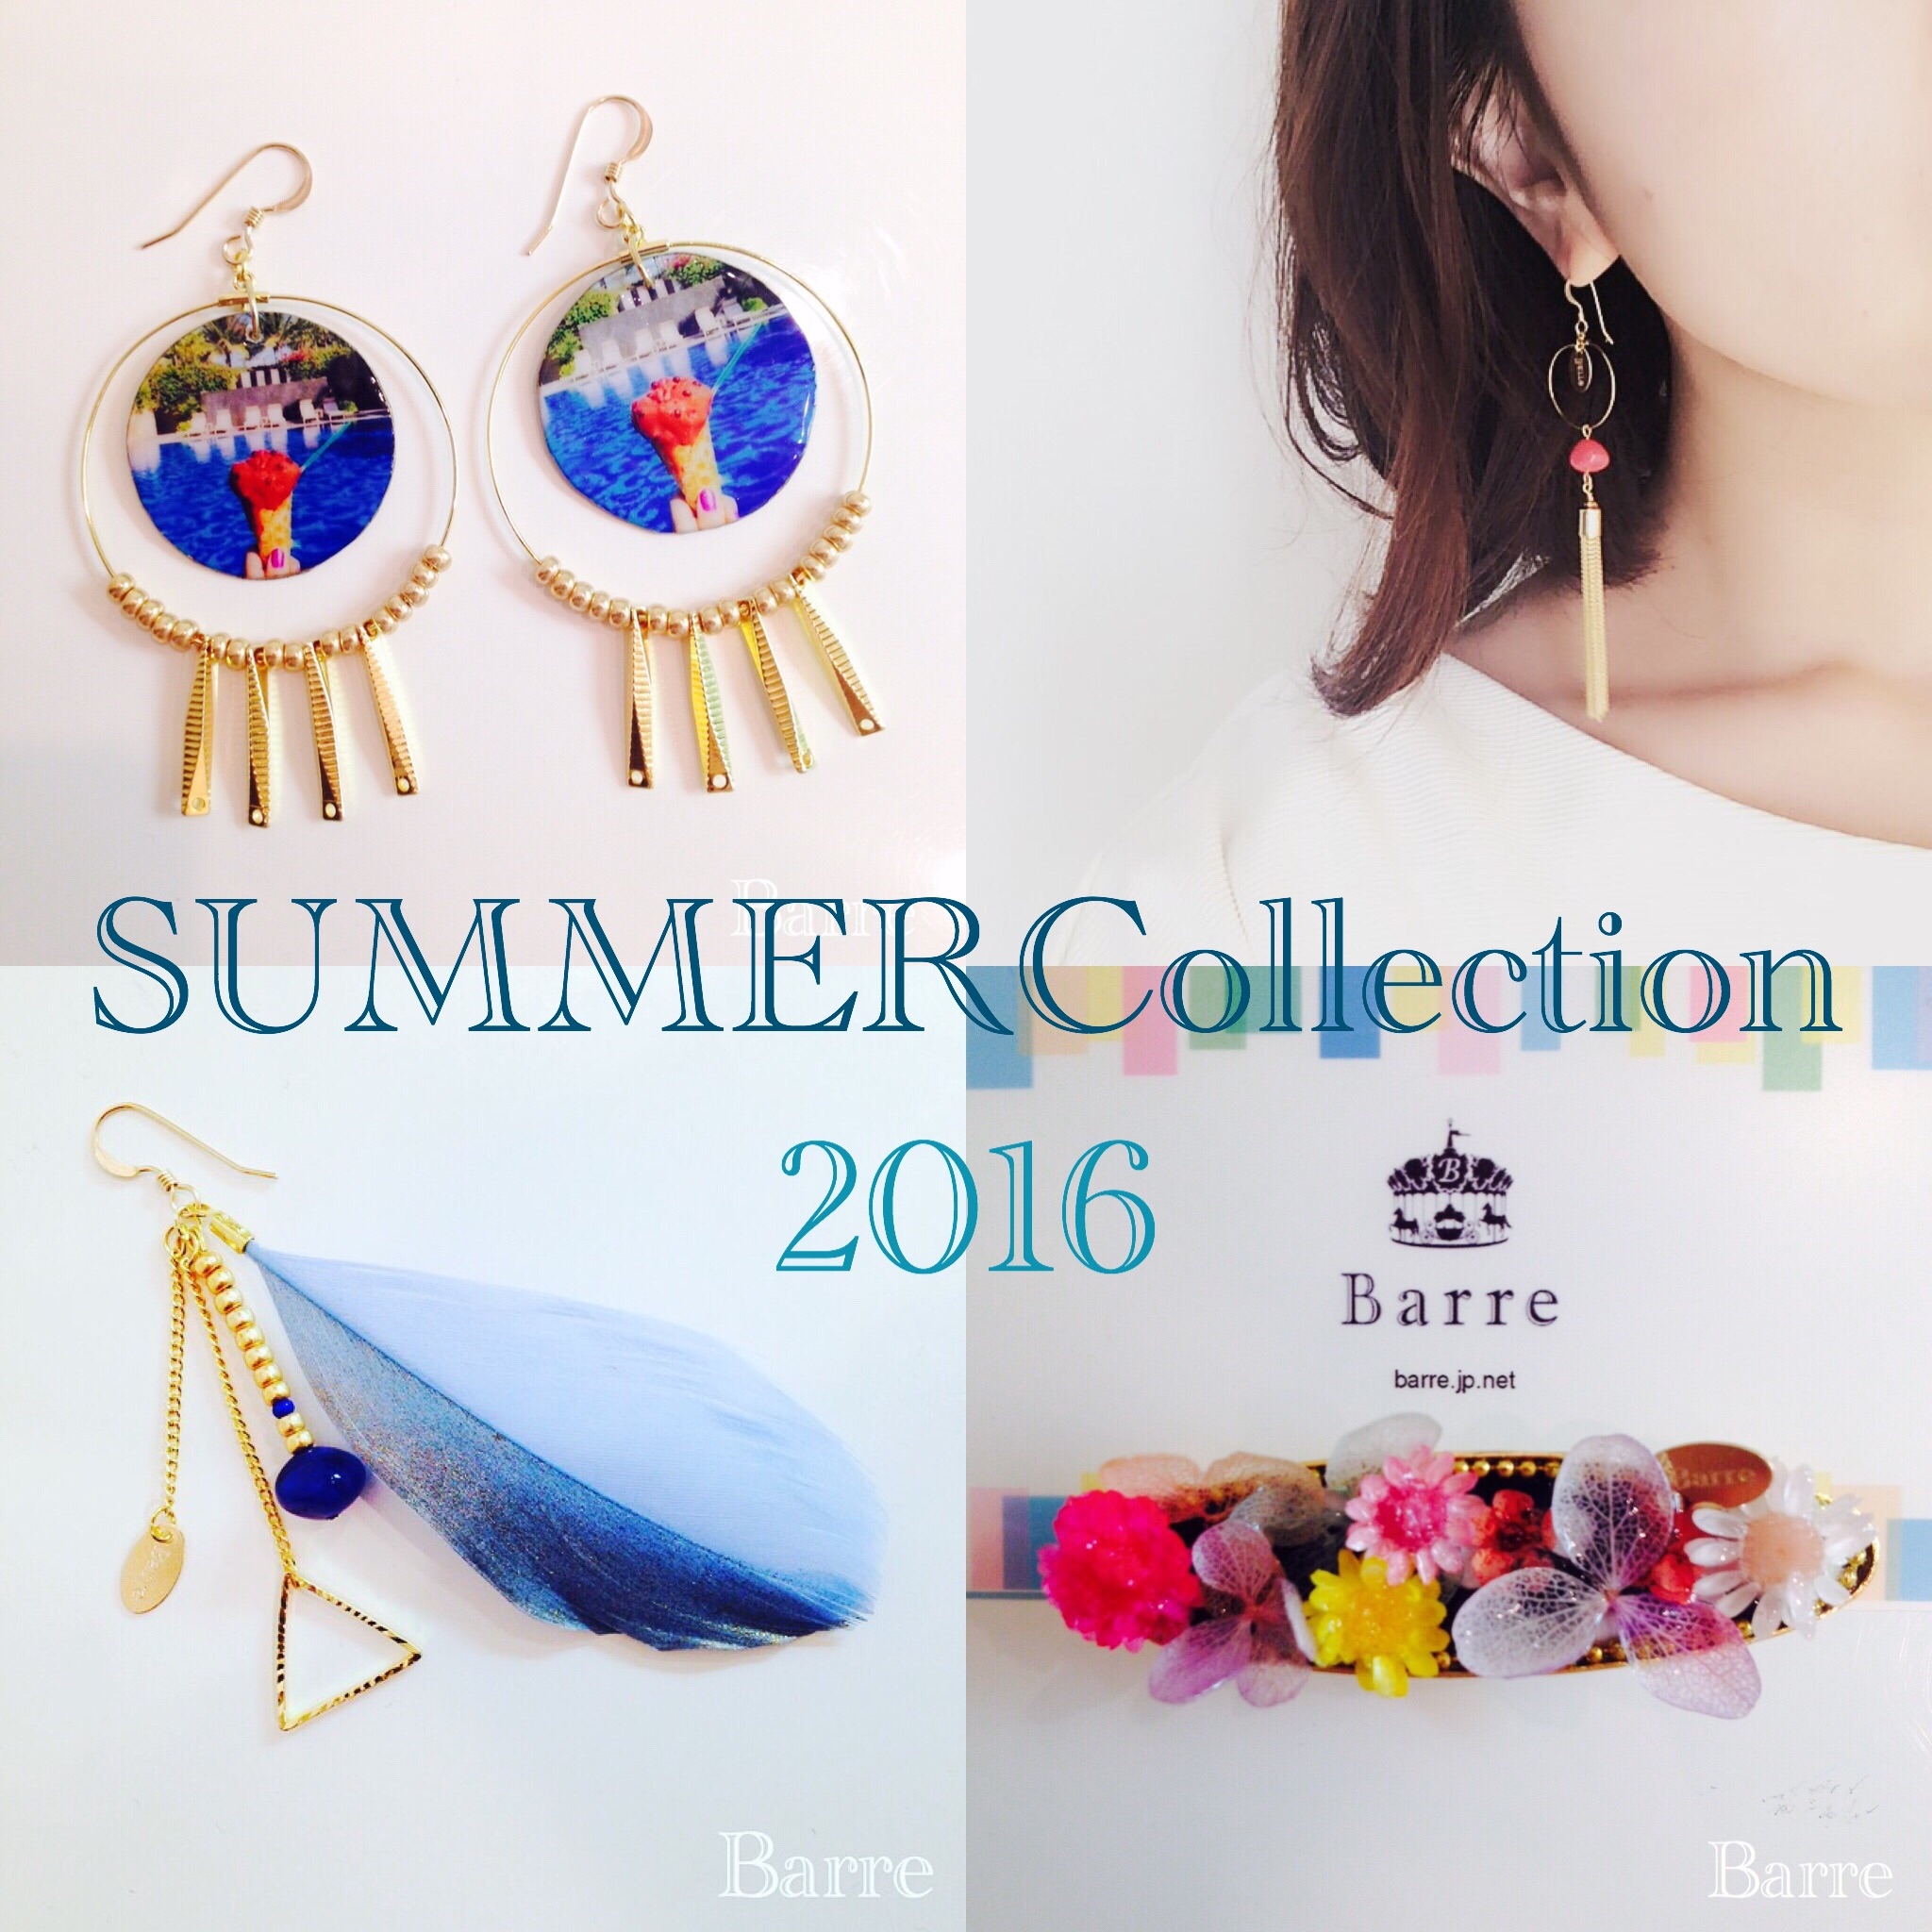 BARRESUMMERCollection2016がスタート